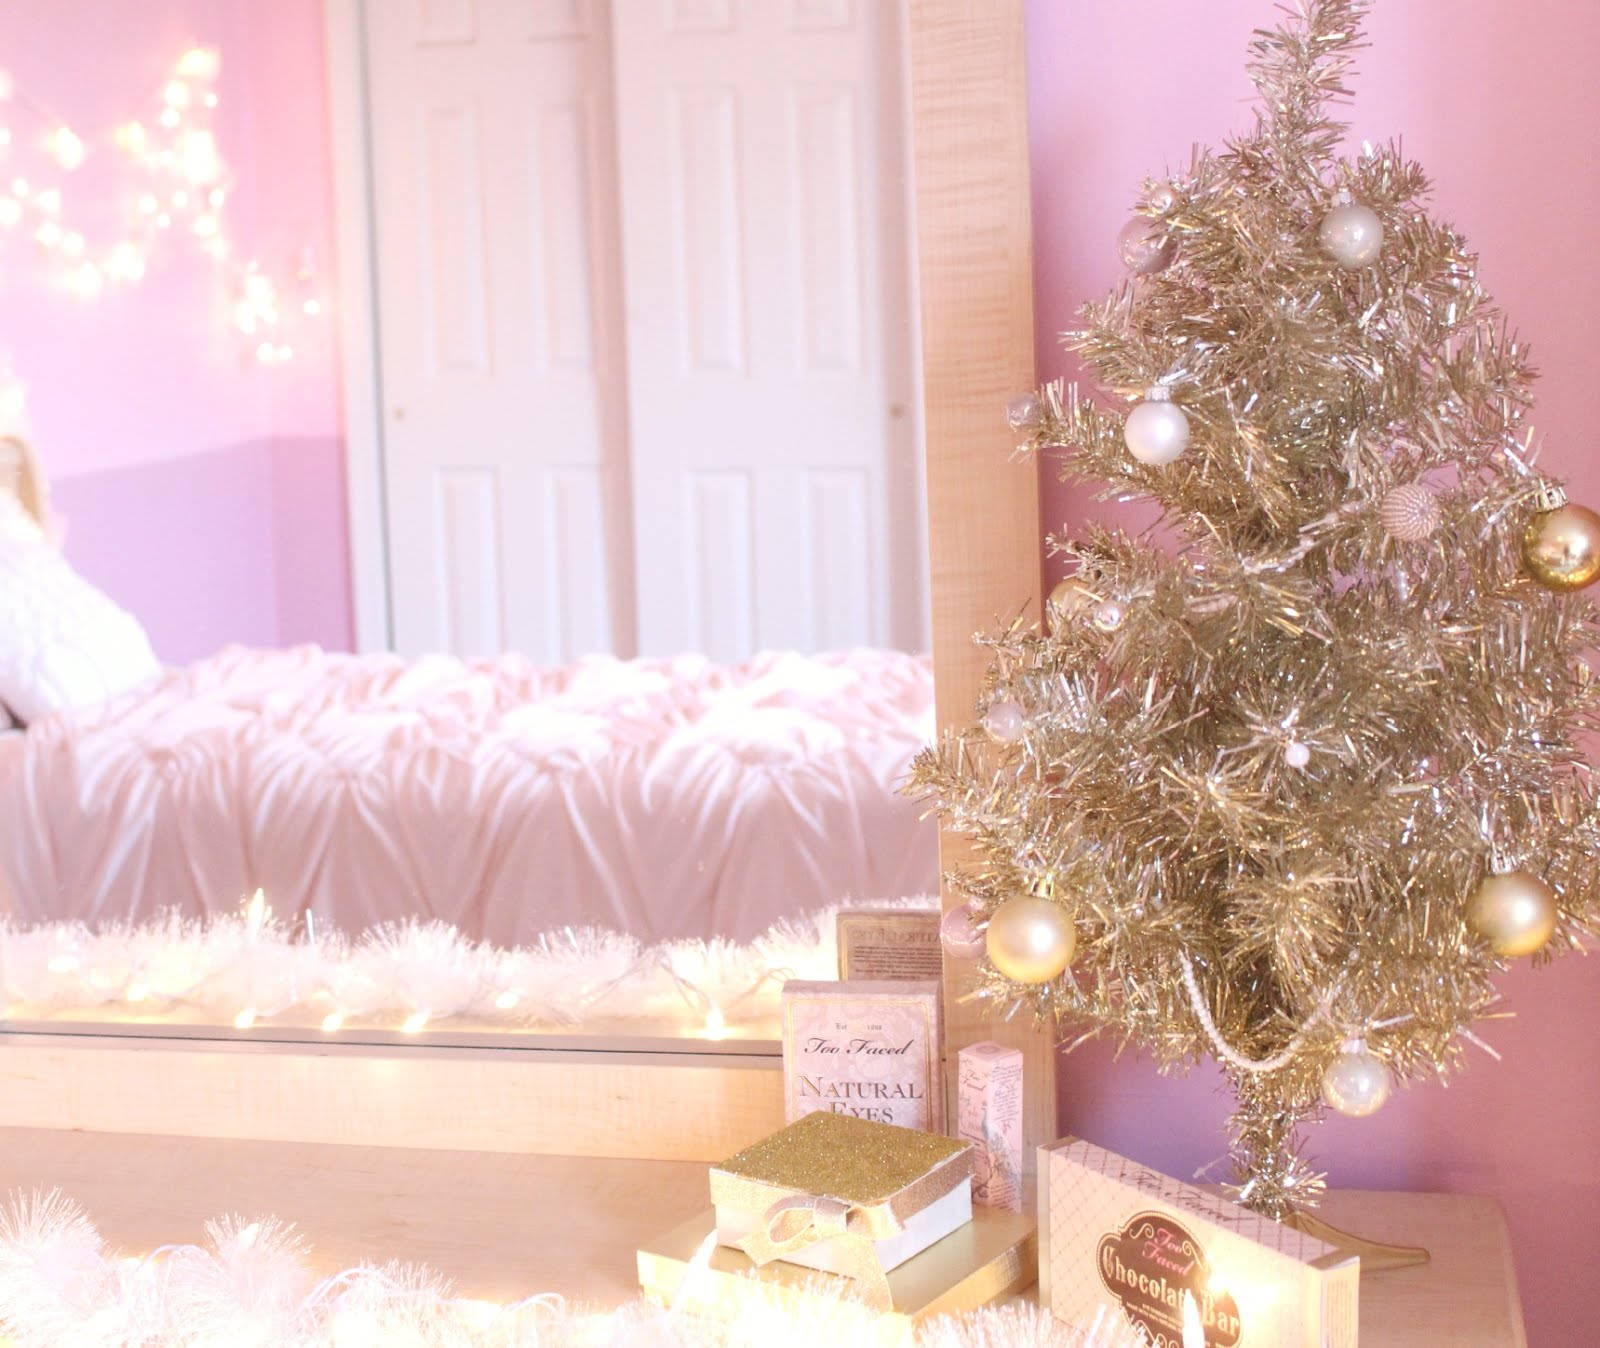 the last little section of my room i decorated is my favorite displaying my little gold christmas tree i bought this tree at target and i love it - Light Pink Christmas Tree